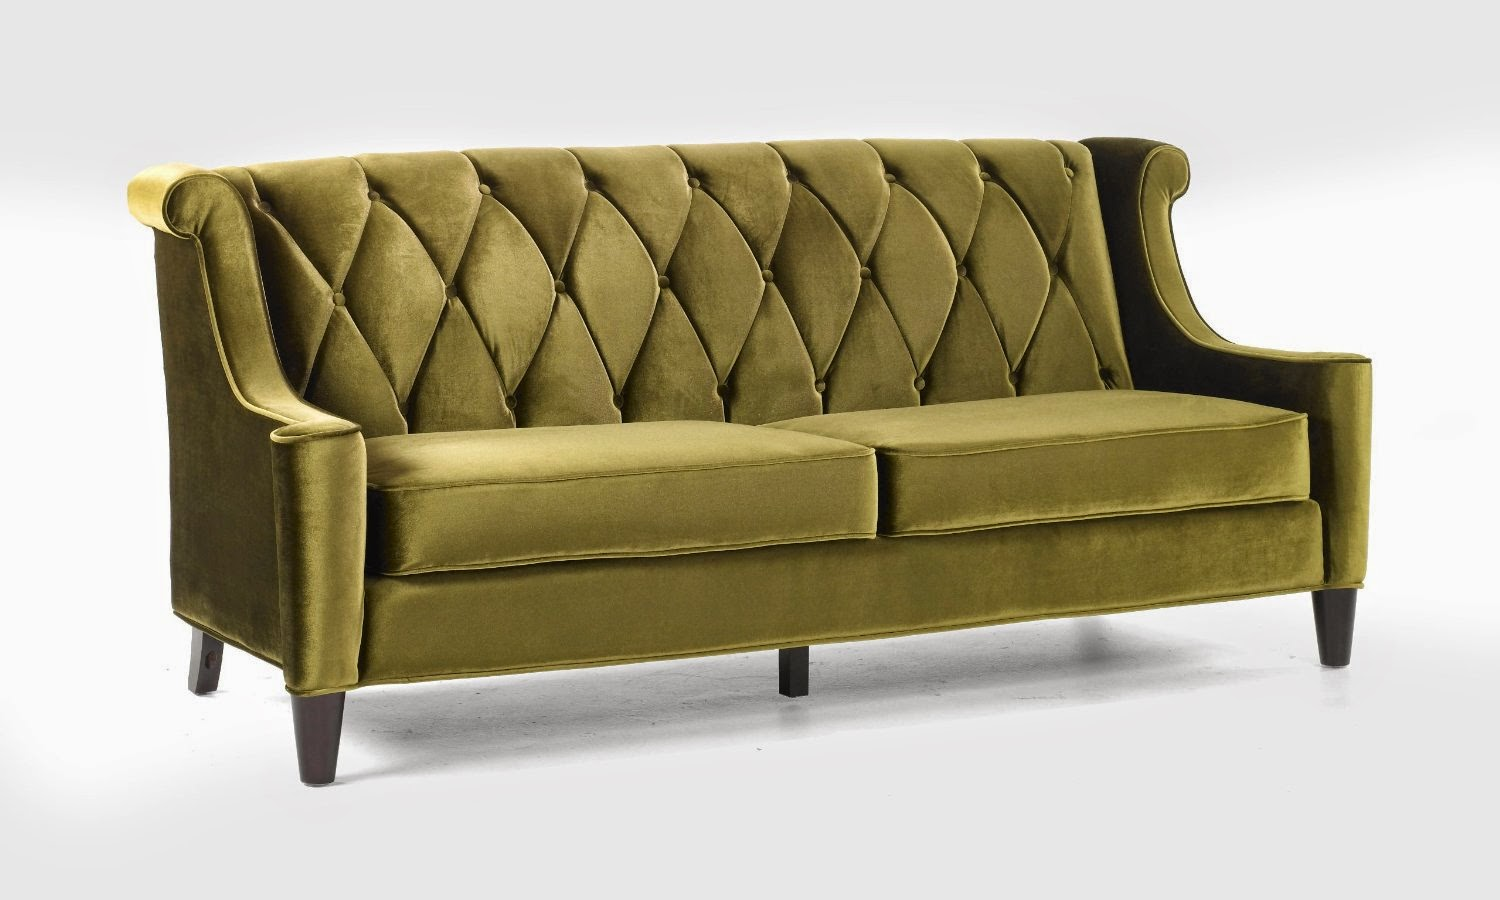 Velvet Grey Tufted Sofa Costco Beds Couch Green